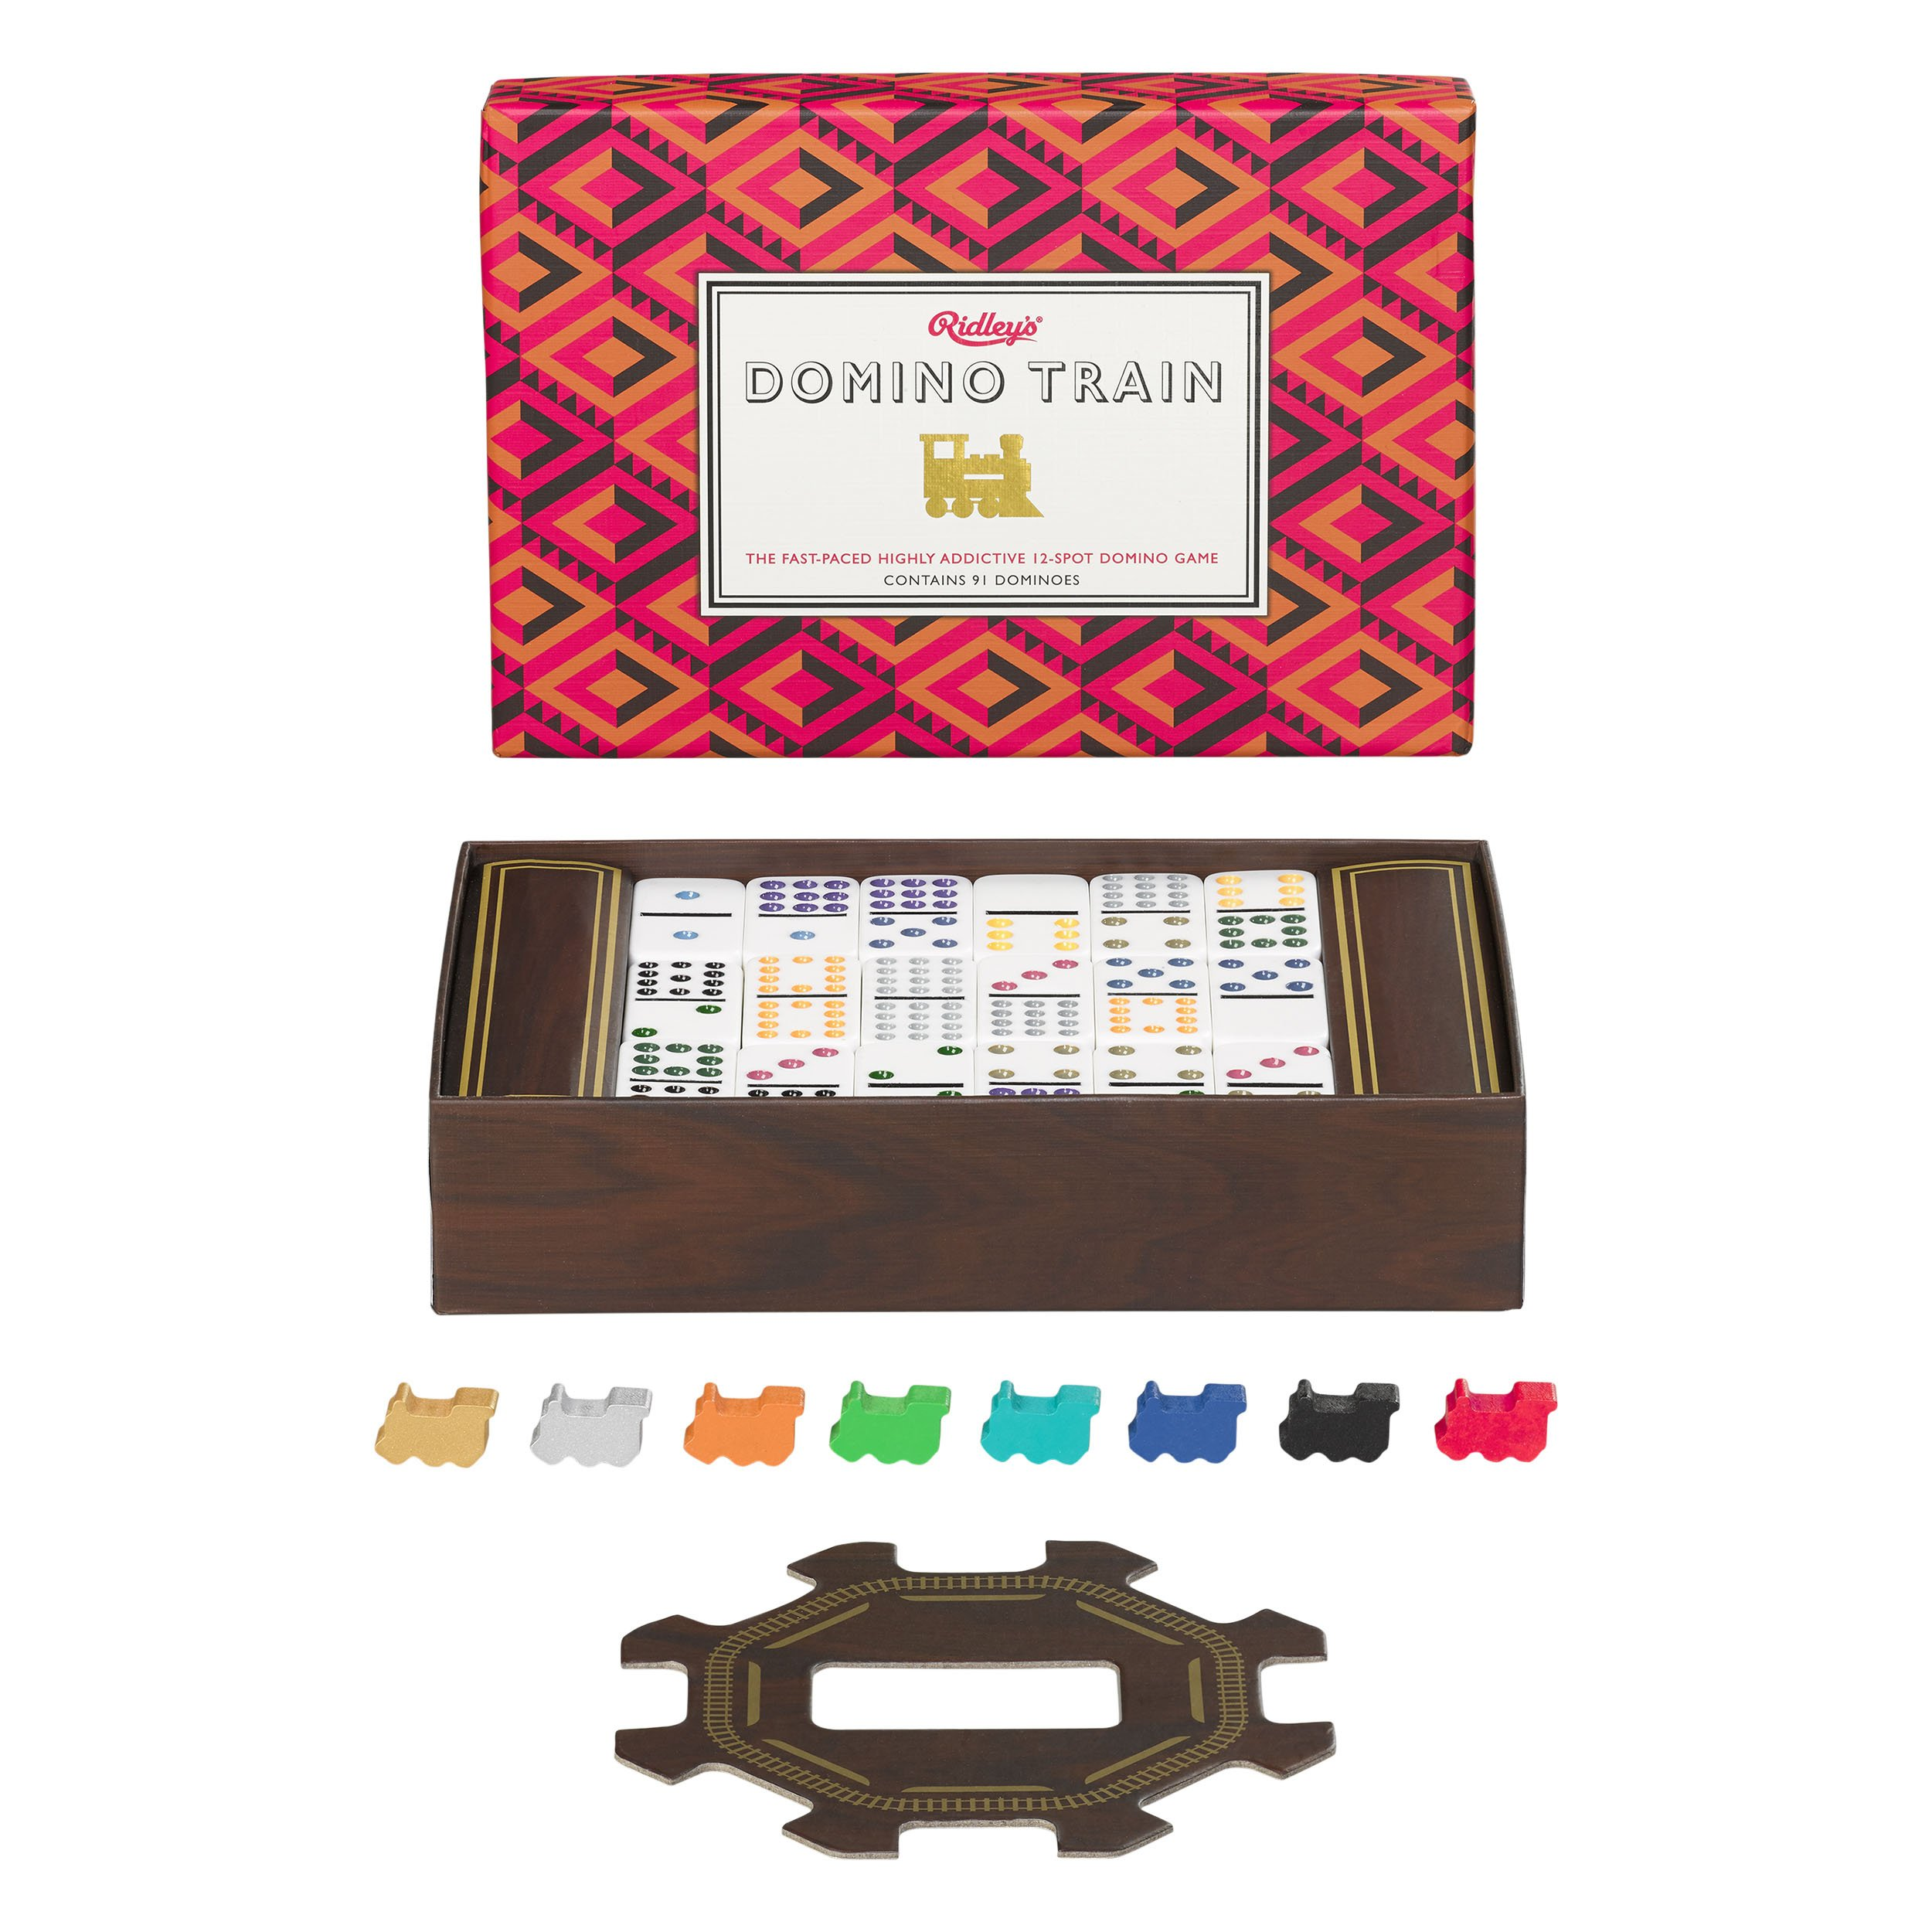 Ridley's Domino Train Board Game for Kids and Adults